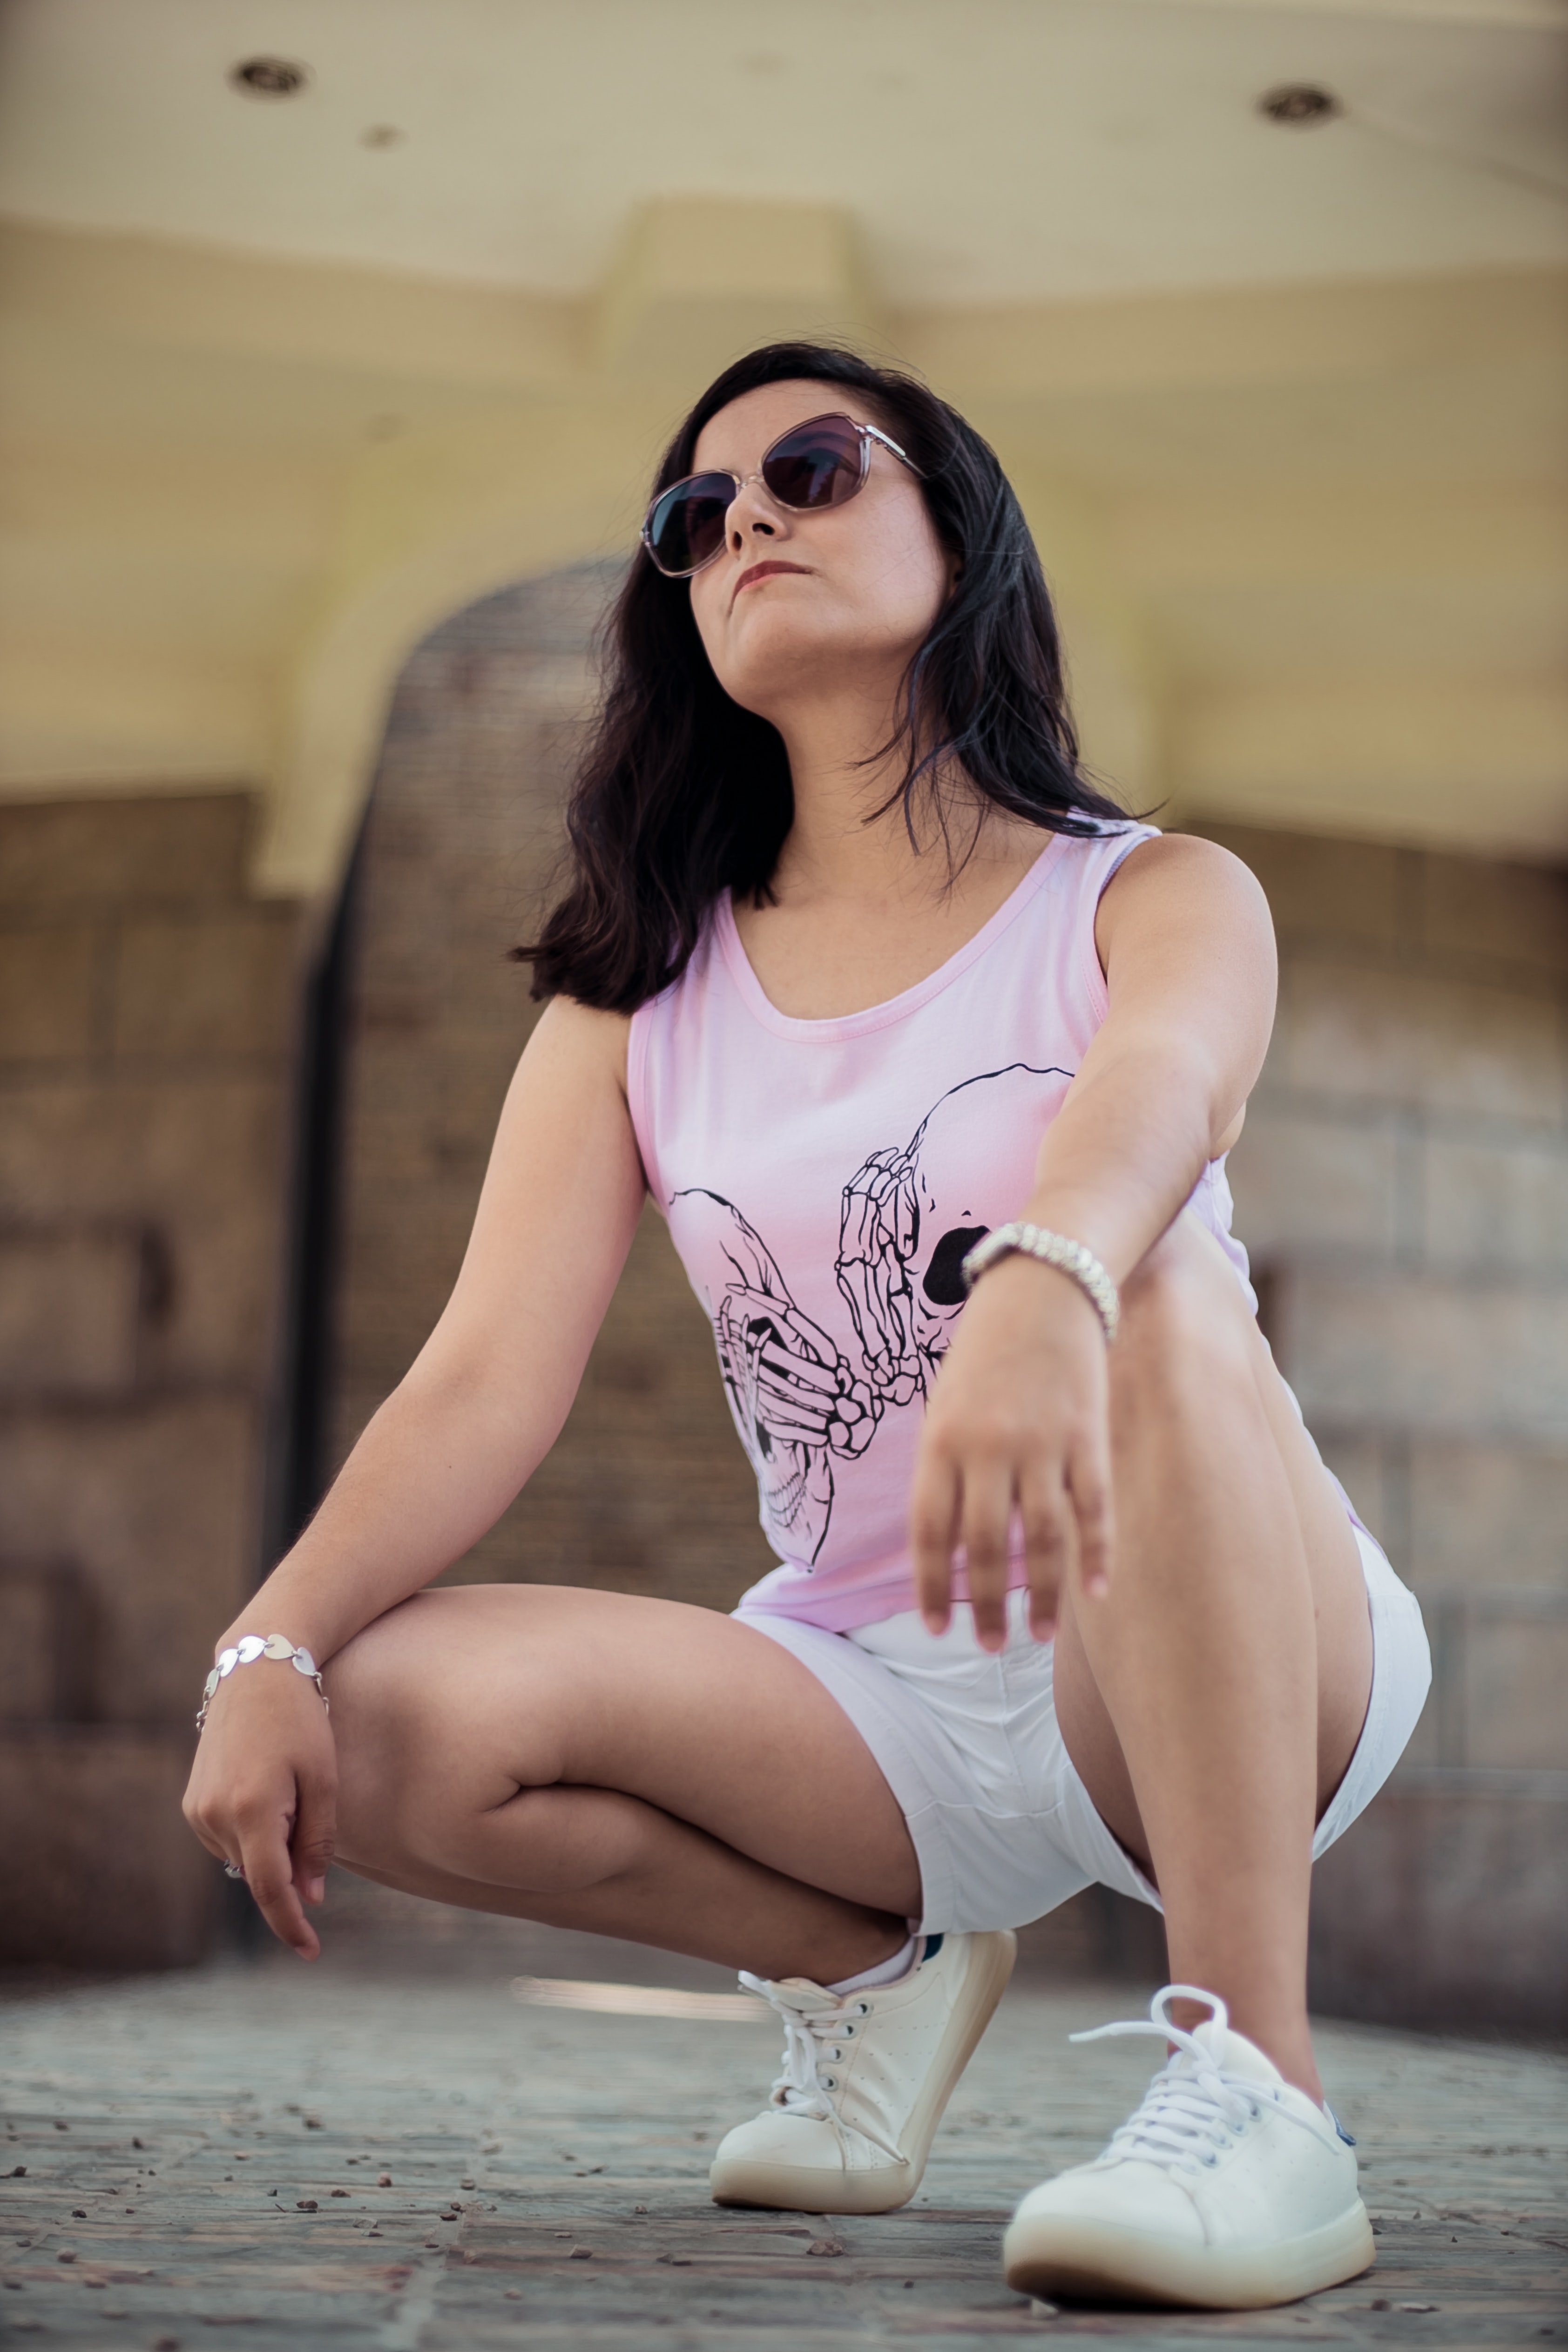 woman in pink tank and white shorts taking photo near brown concrete wall